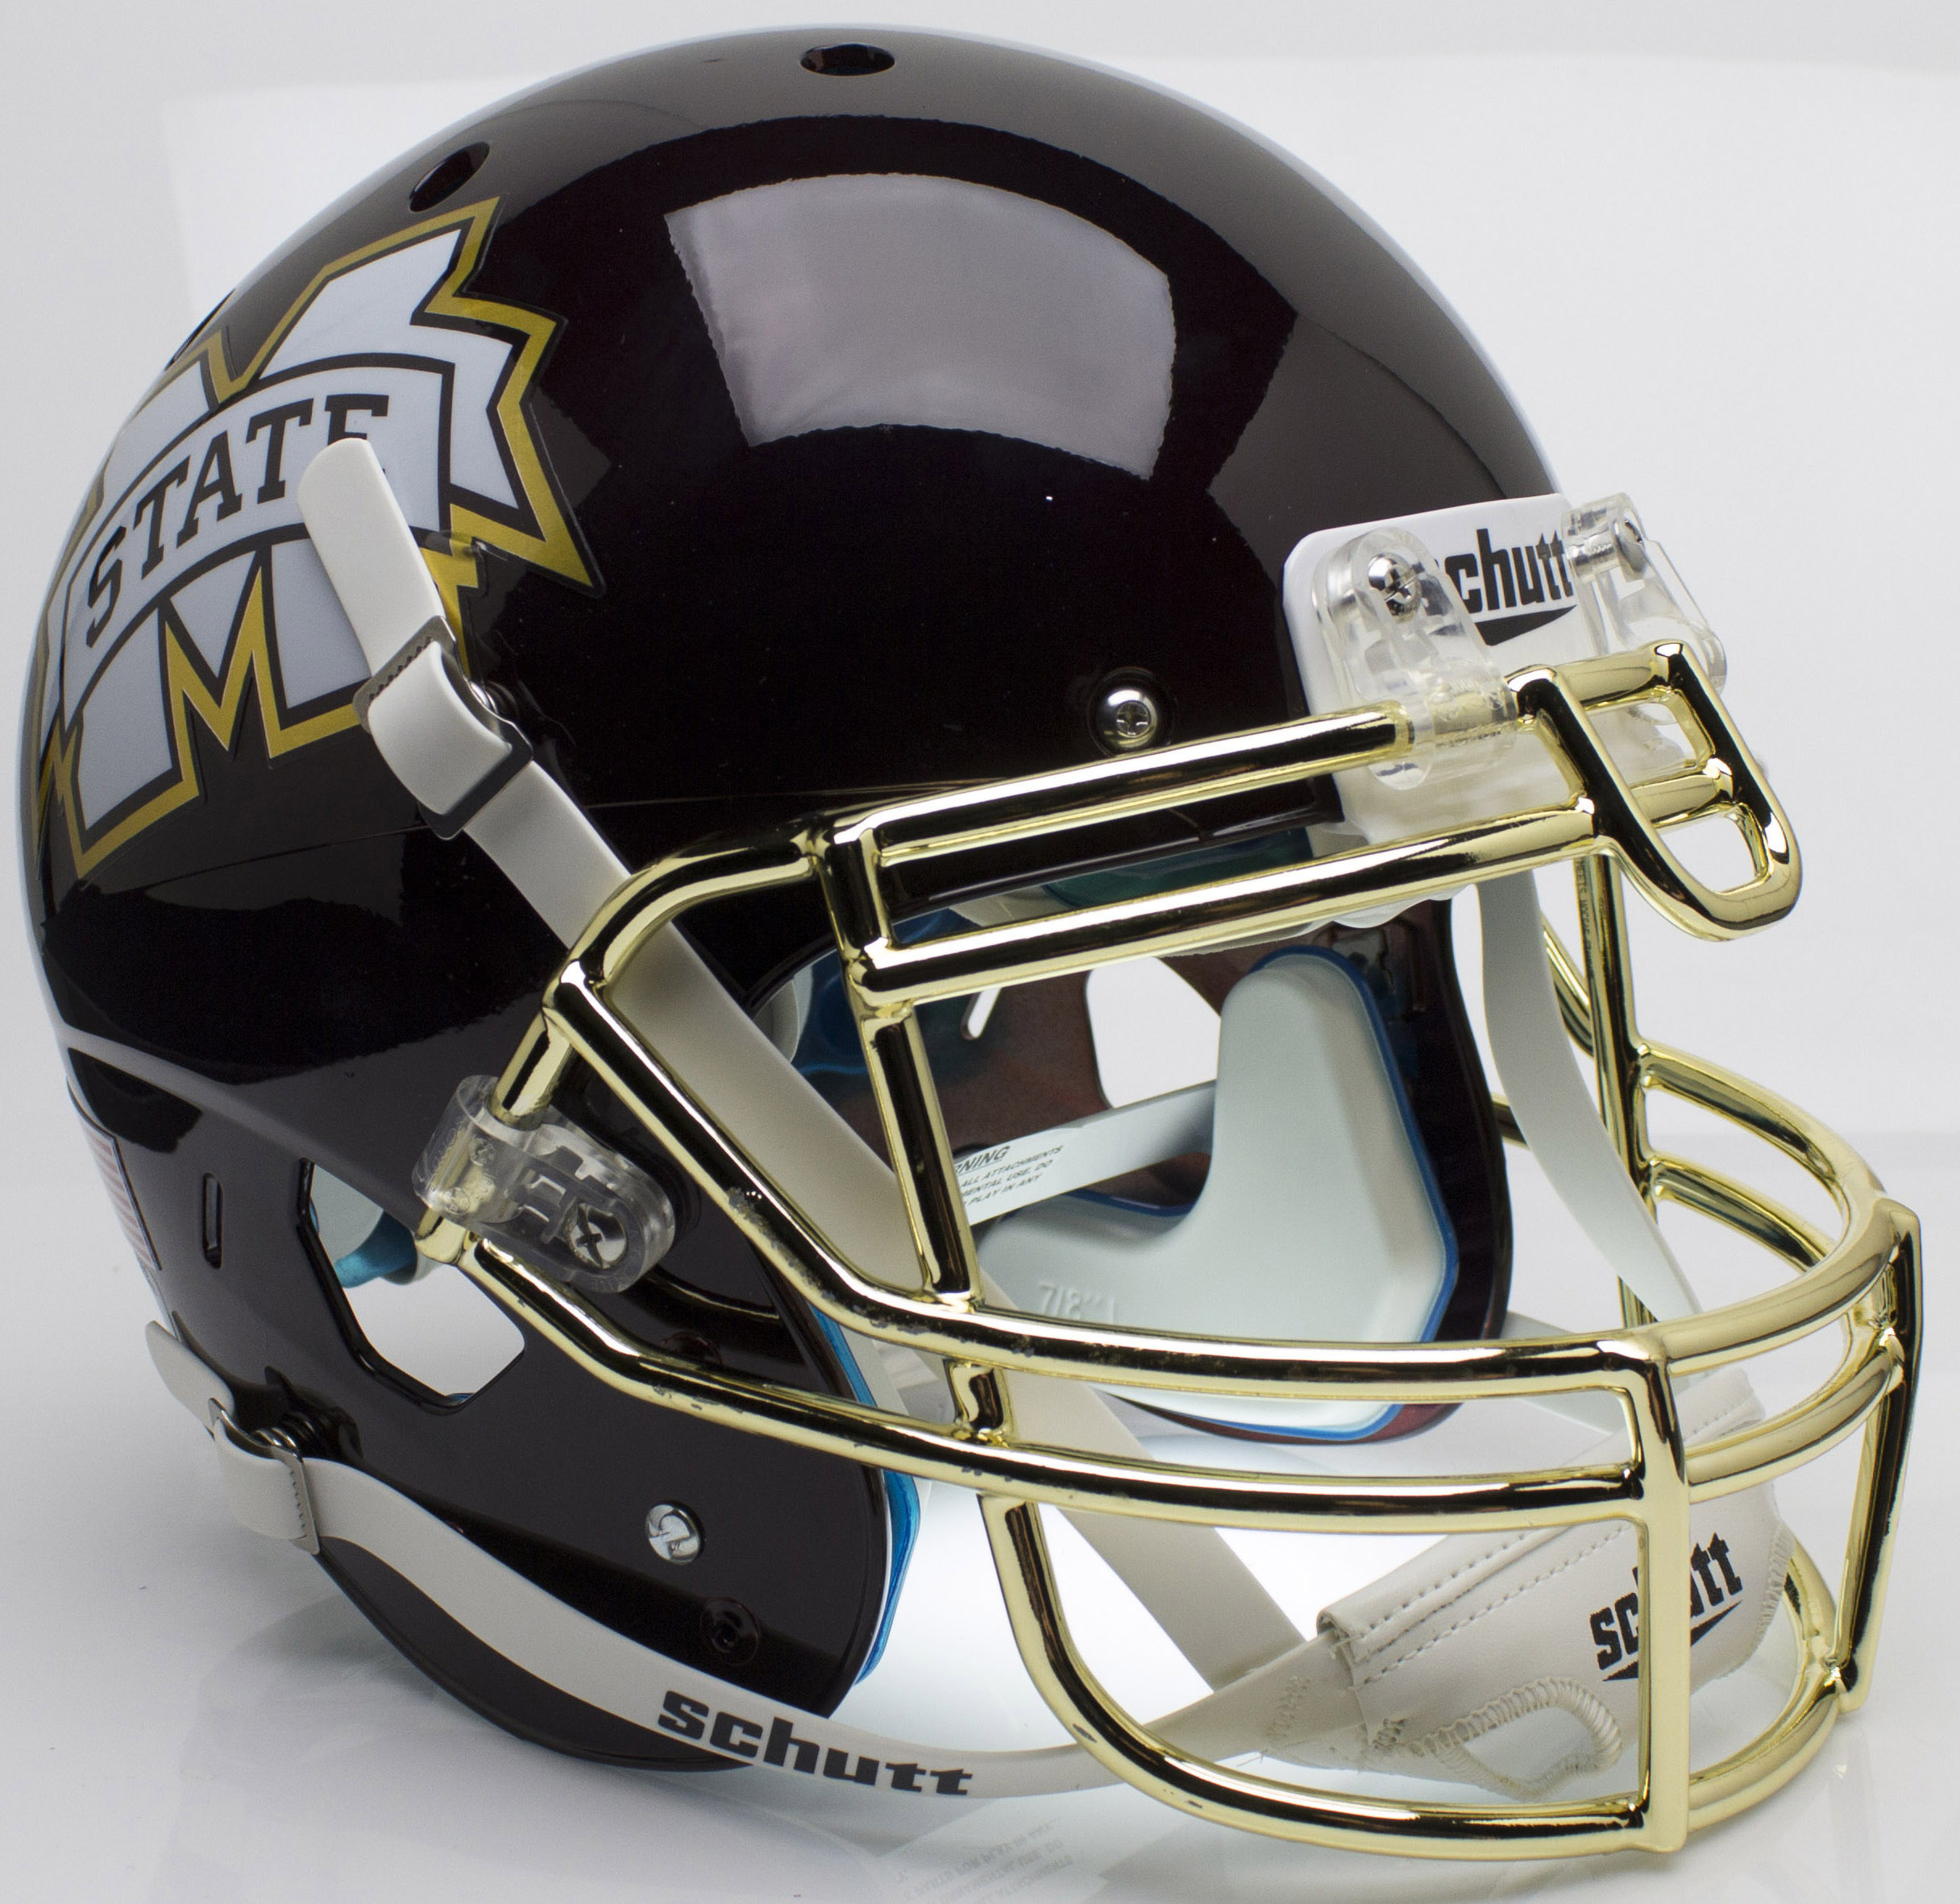 Mississippi State Bulldogs Authentic College XP Football Helmet Schutt <B>Chrome Gold Mask</B>